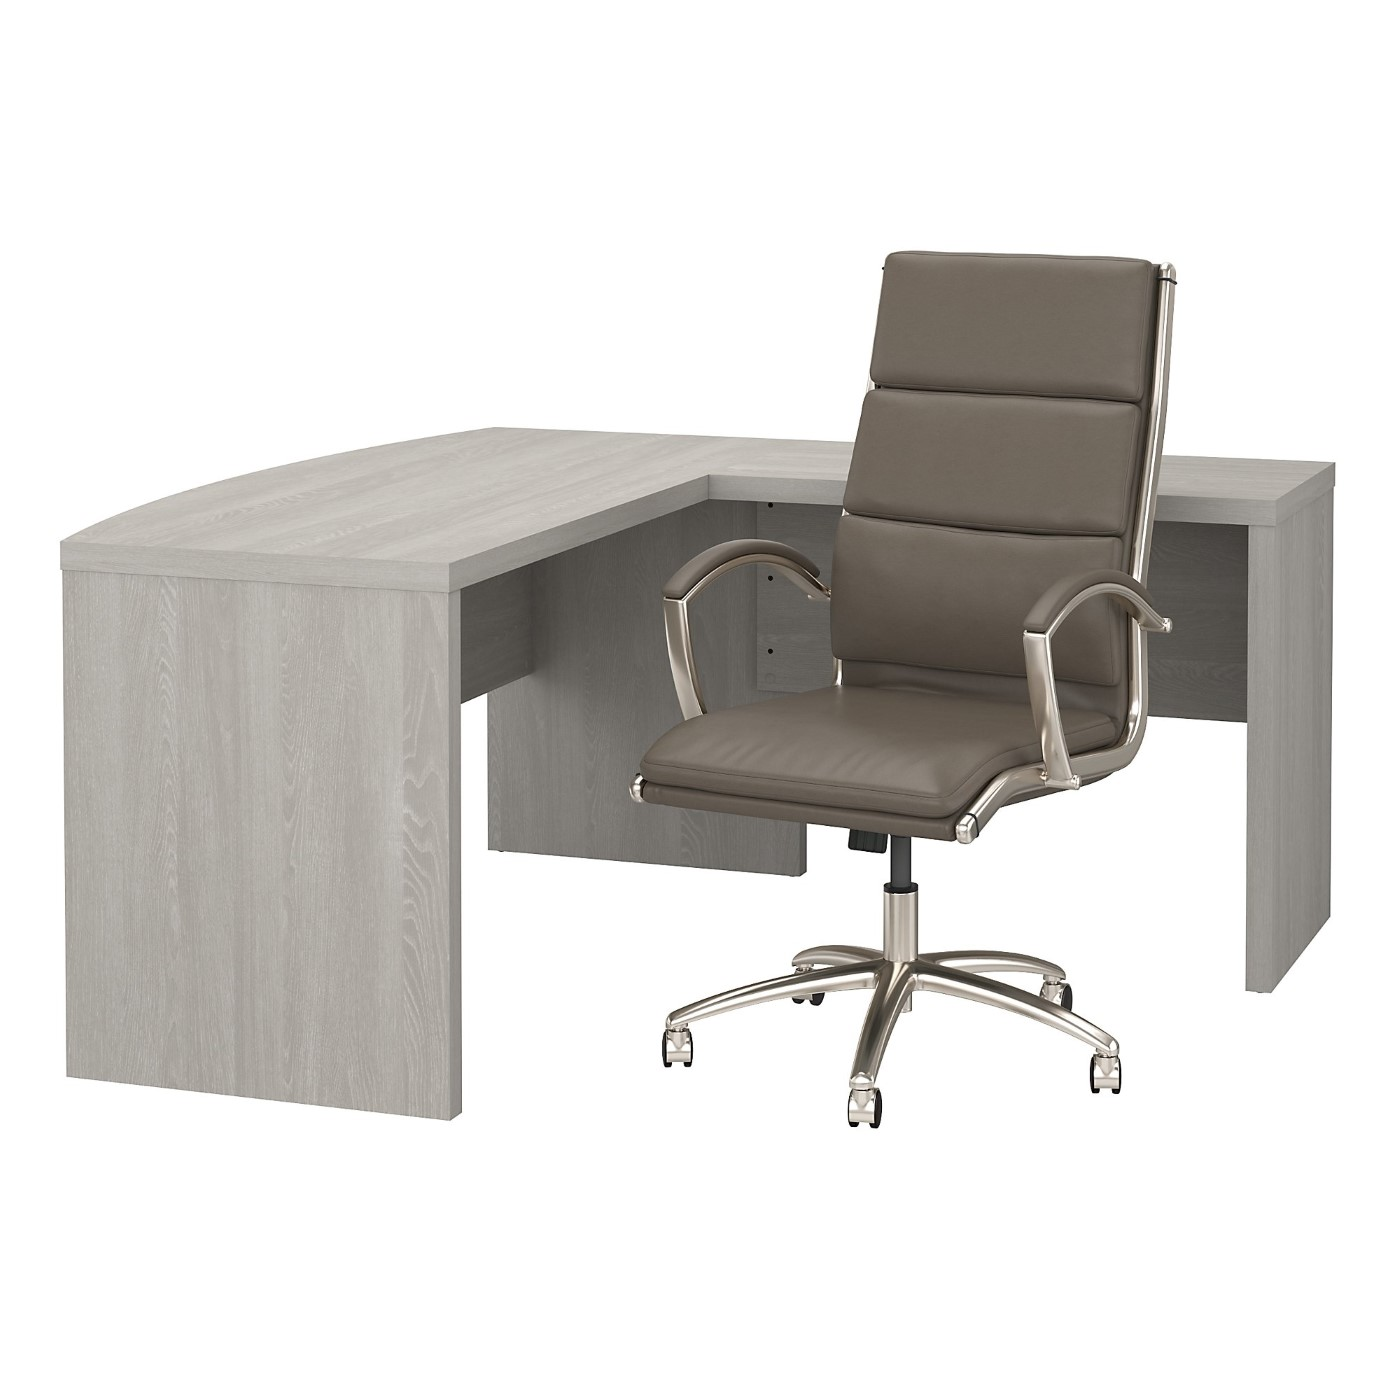 </b></font><b>The kathy ireland� Echo L Shaped Bow Front Desk with High Back Chair is Sustainable Eco Friendly Furniture. Includes Free Shipping! 30H x 72L x 72W</b></font>  VIDEO BELOW. <p>RATING:&#11088;&#11088;&#11088;&#11088;&#11088;</b></font></b>